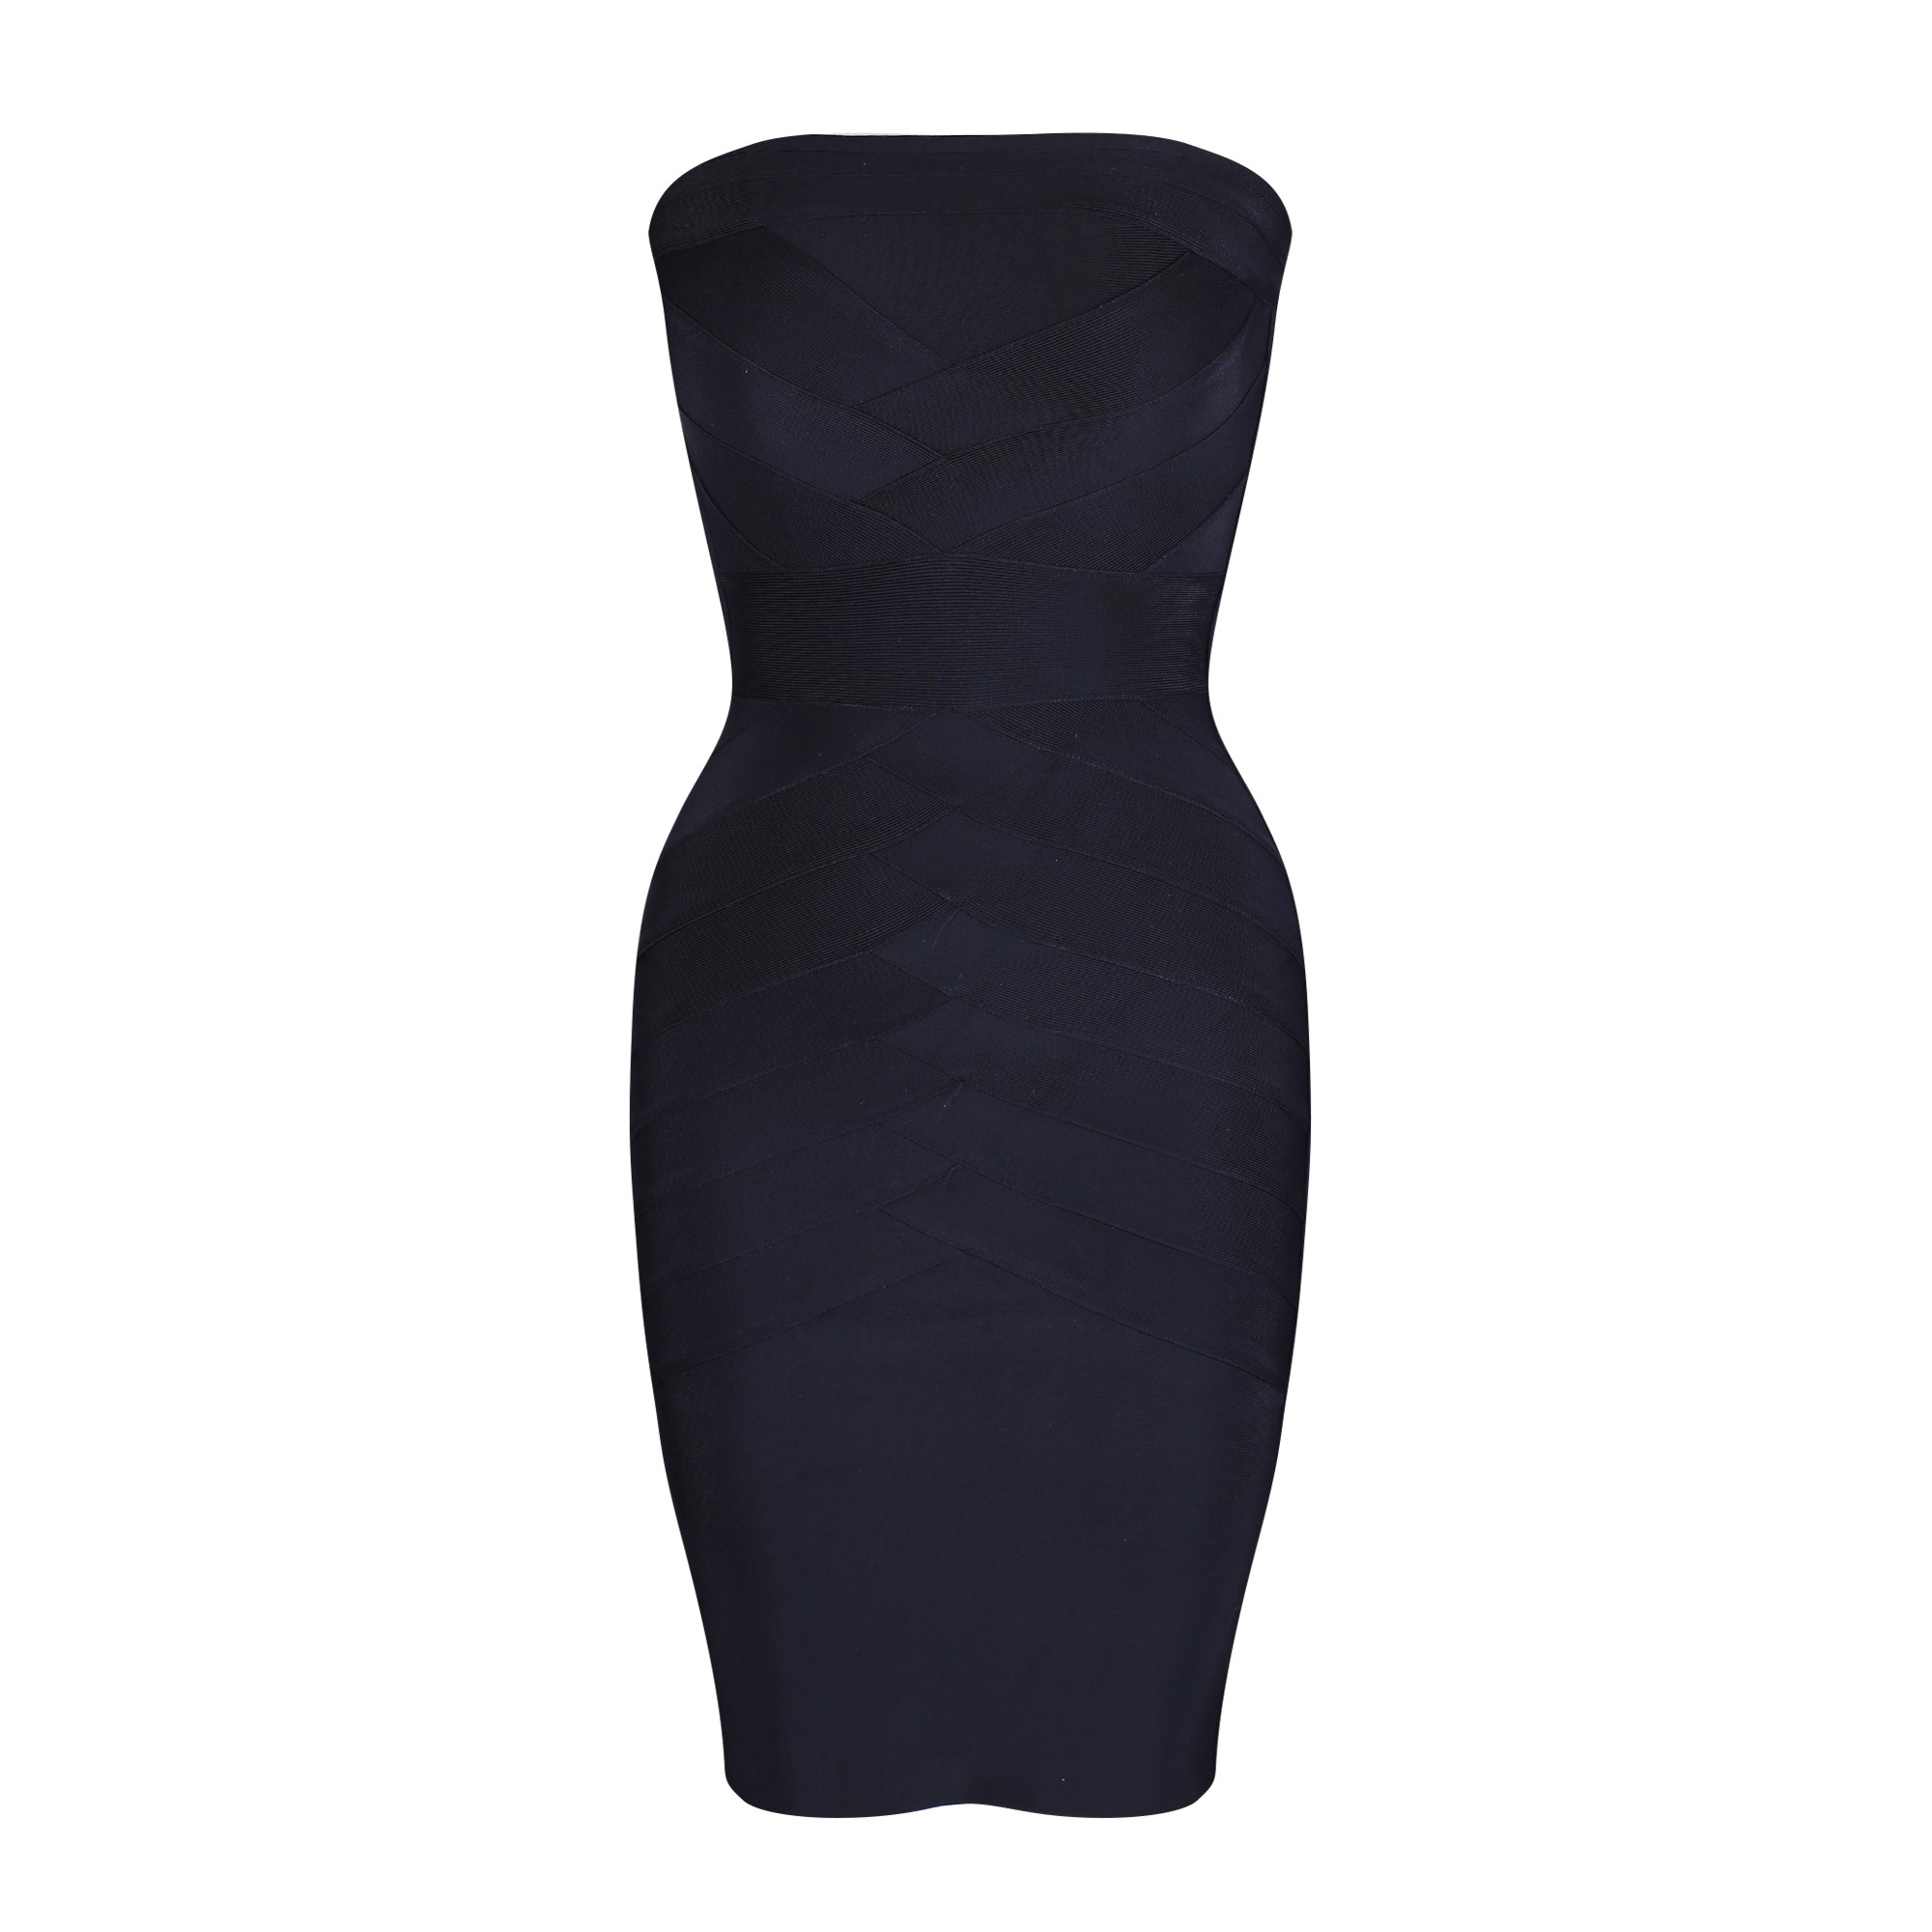 Black Strapless Sleeveless Over Knee Flat Fashion Bandage Dress HQ243-Black